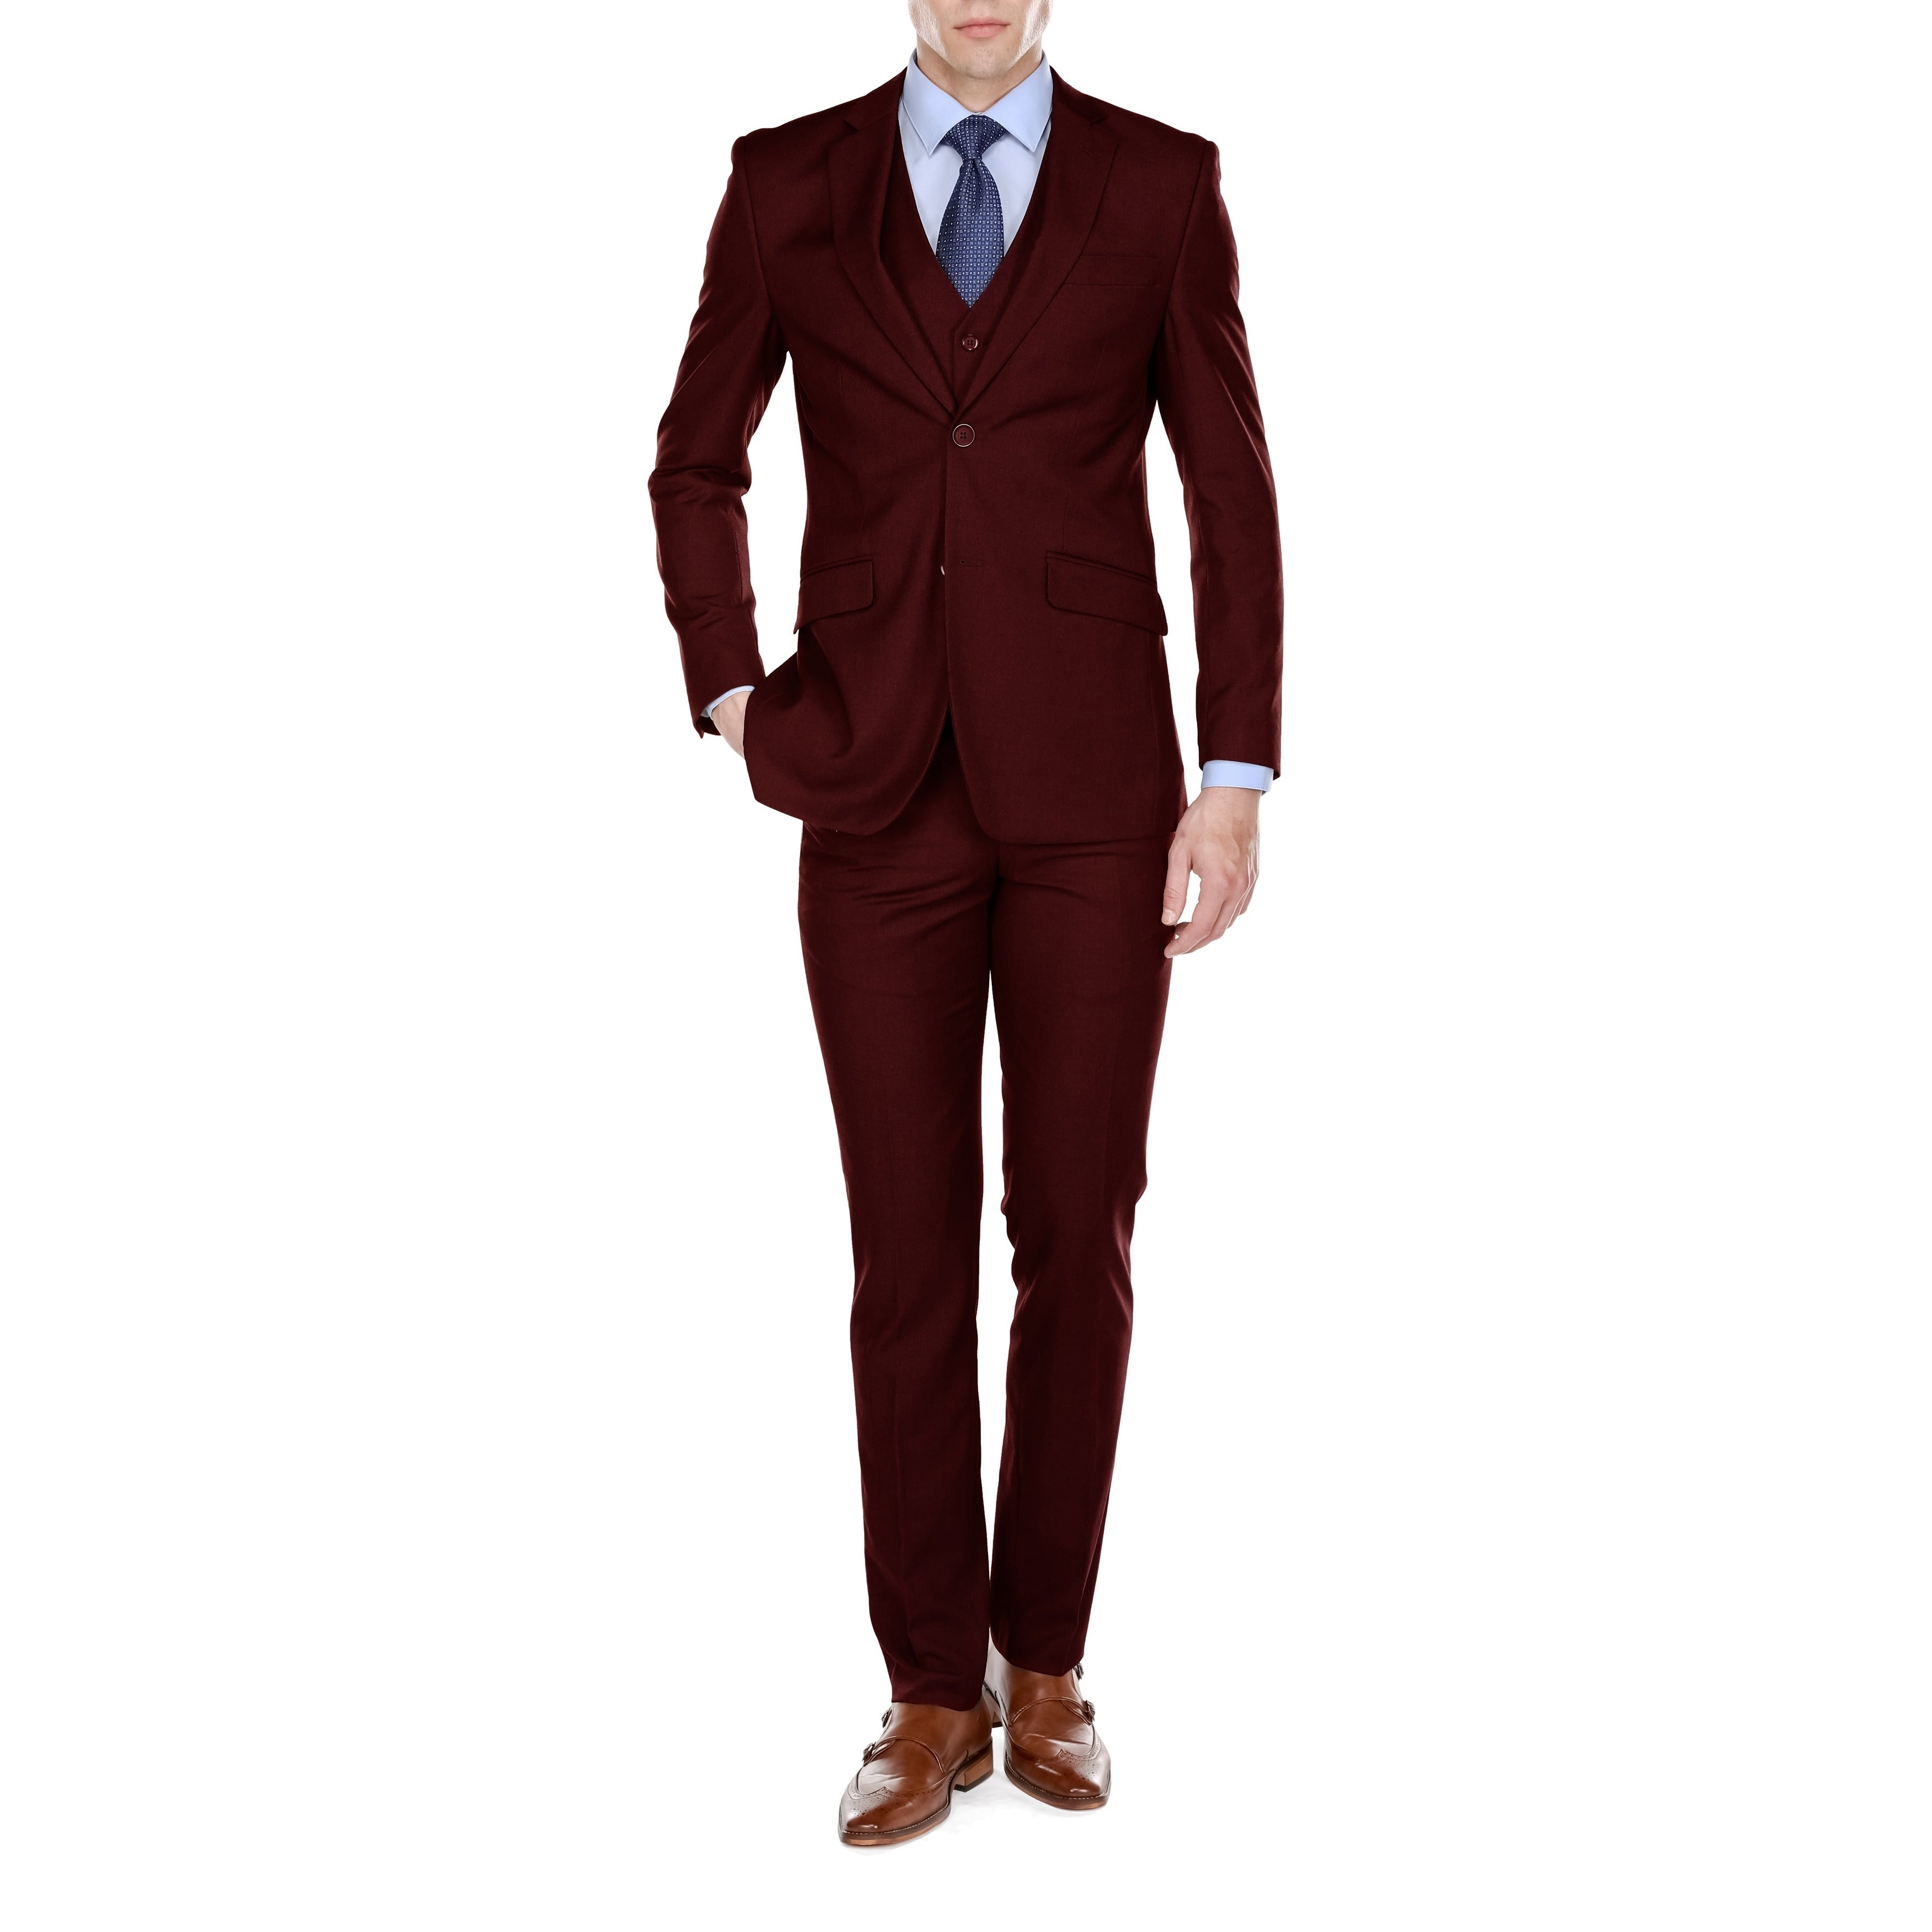 6496a02050bf Shop Fino Uomo Men's Slim Fit 3 Piece Suits - On Sale - Free ...